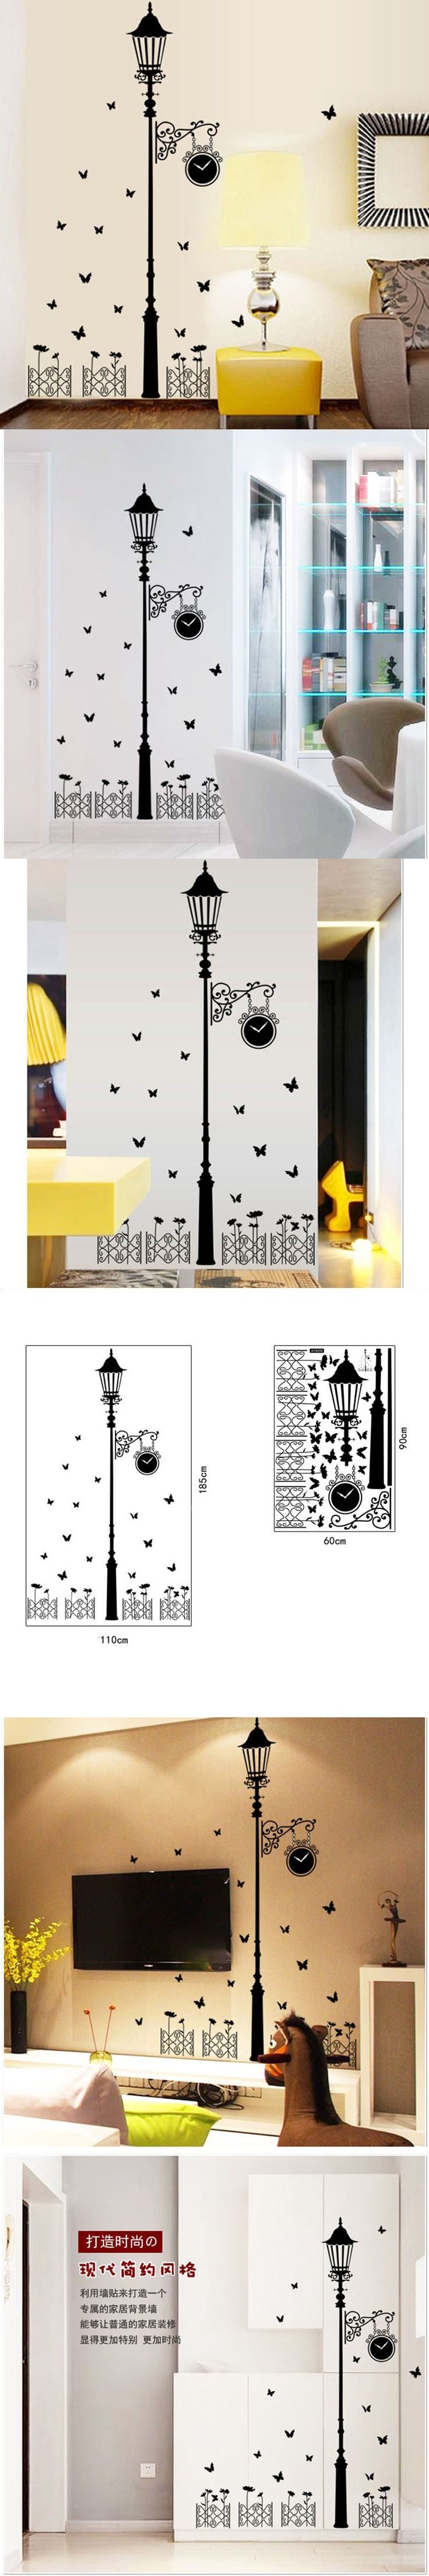 Best 25 minimalist wall stickers ideas on pinterest wall modern minimalist black lights wall stickers home decor removable pvc wall sticker decals wallpaper 110185cm amipublicfo Image collections